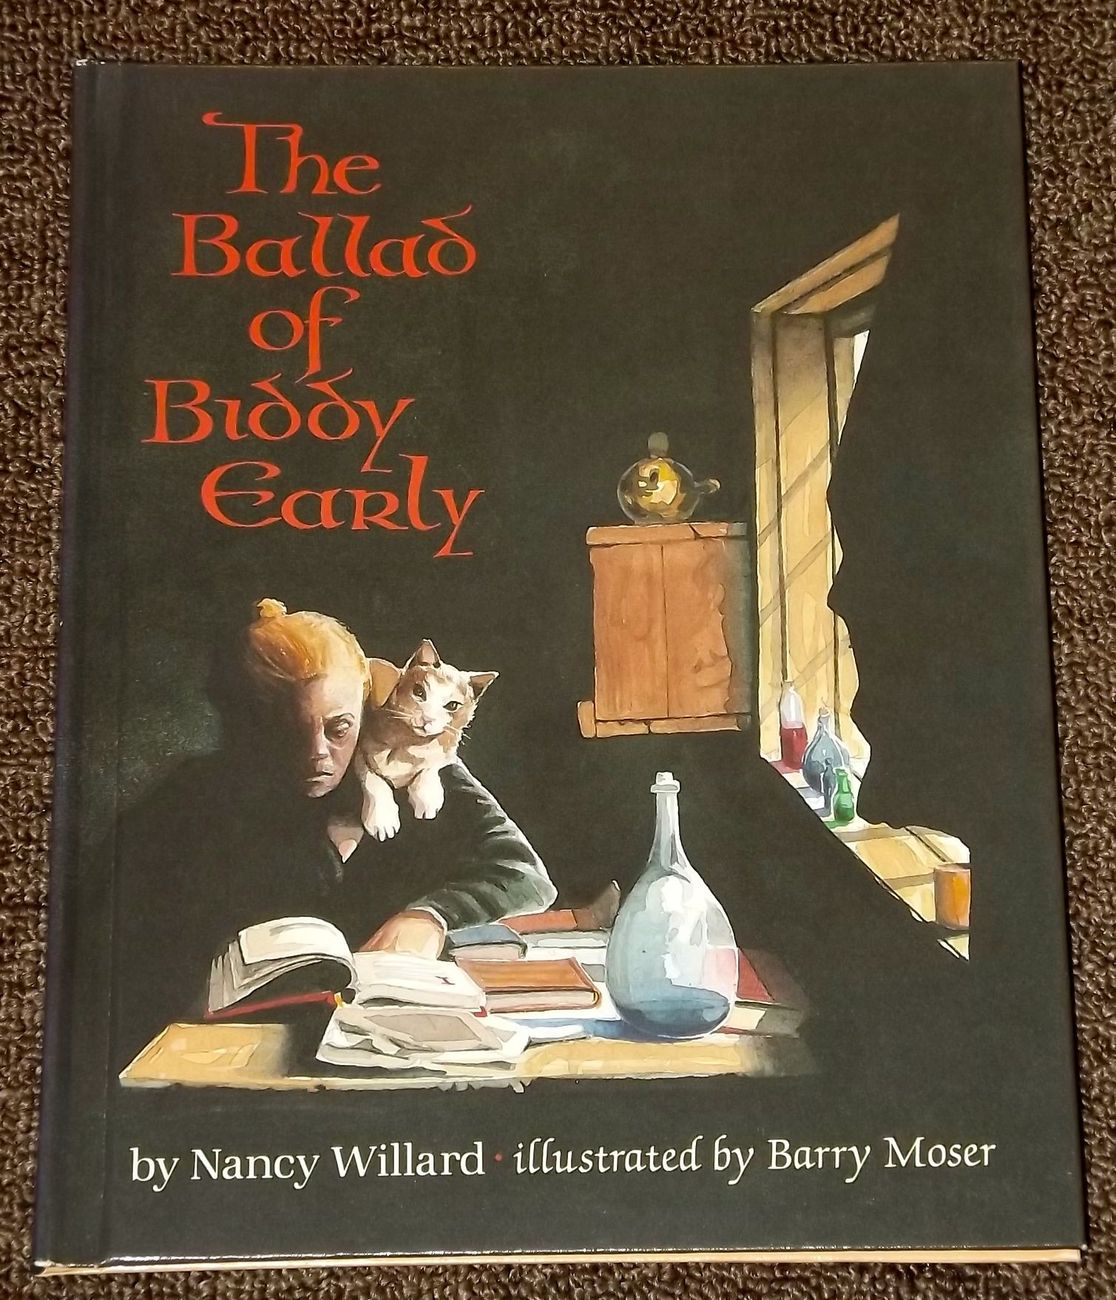 Primary image for The Ballad of Biddy Early by Nancy Willard and Barry Moser